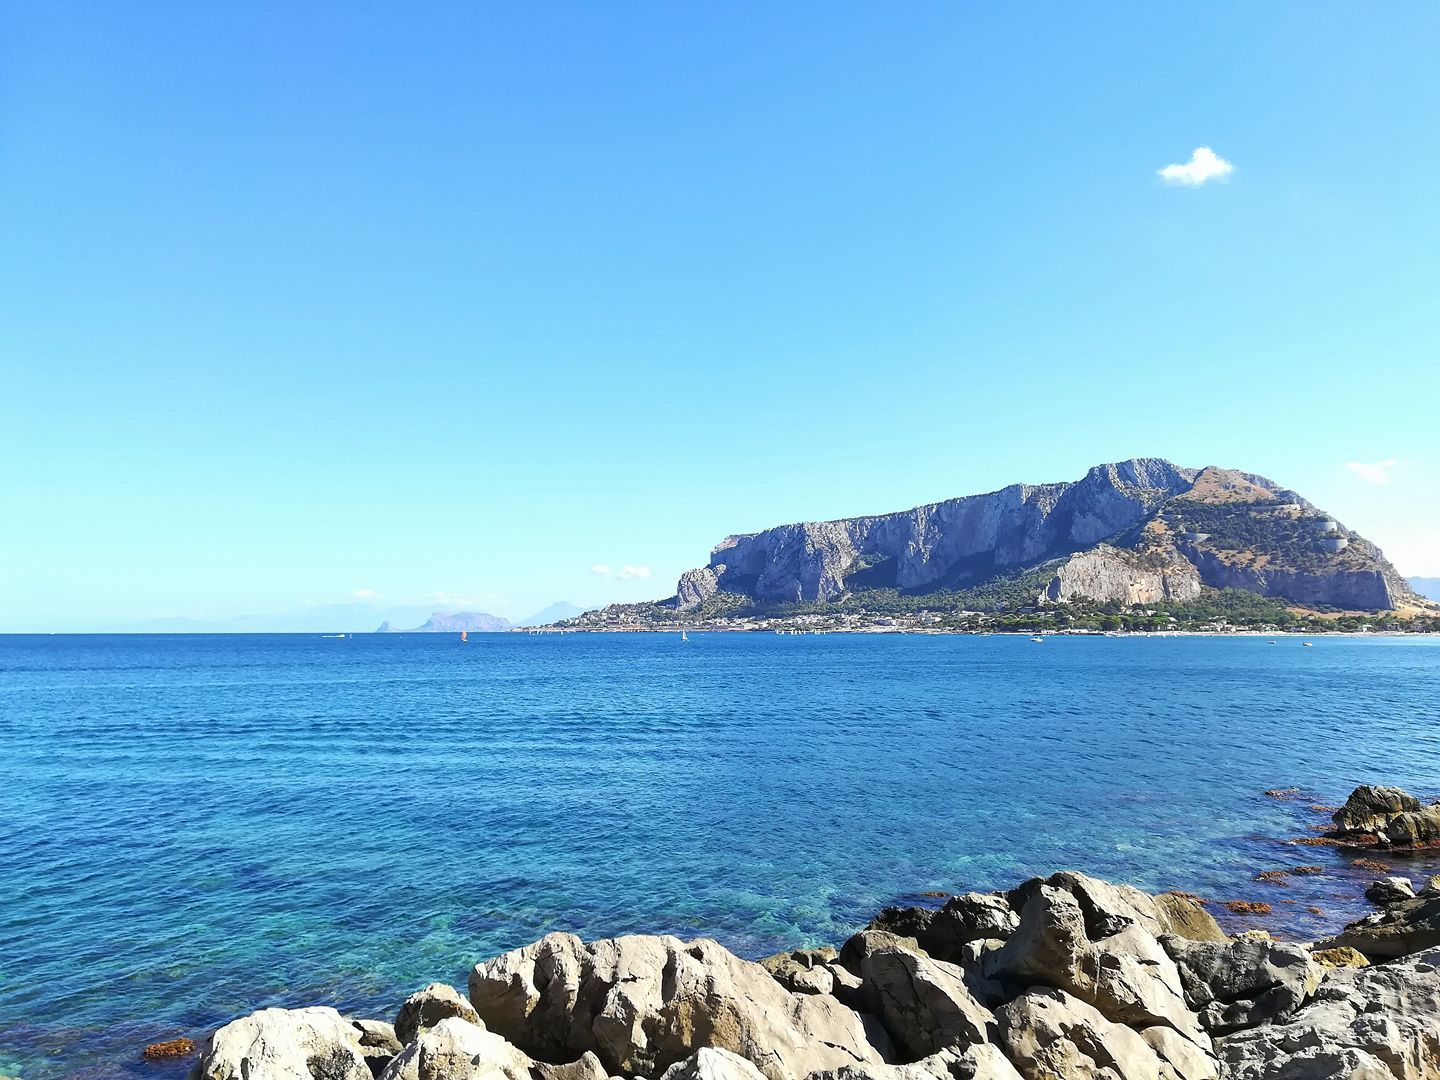 photo by: Giuliano Merlo; desc: Mondello; licence cc